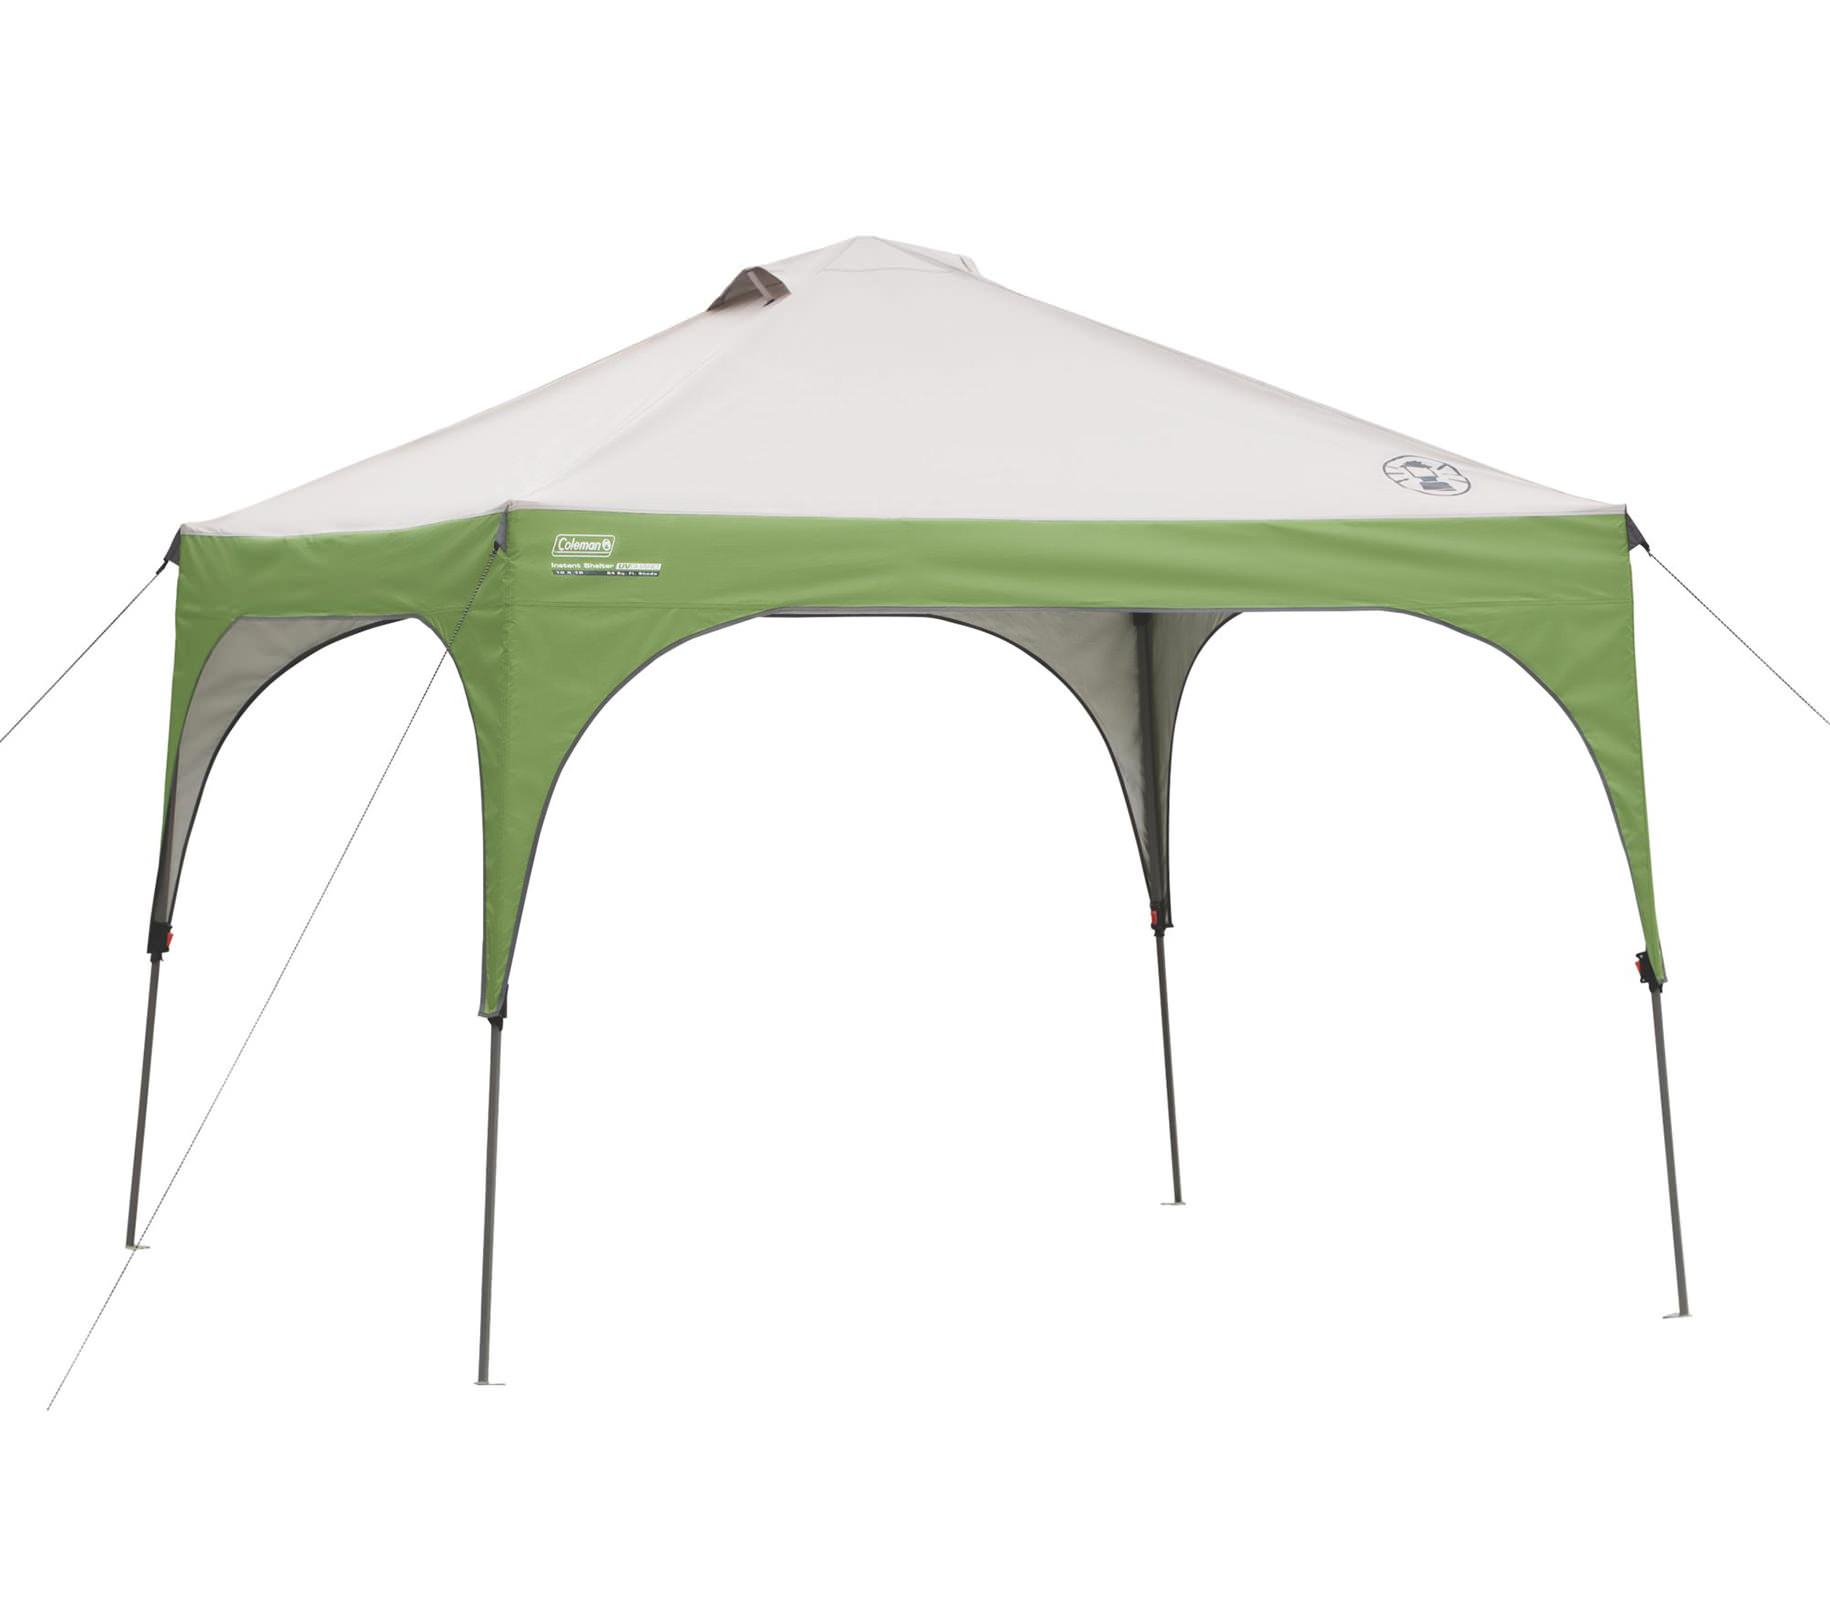 Instant Awning M 225 I Che 3x3 Coleman Straight Wall Shelter 2000004410 3067